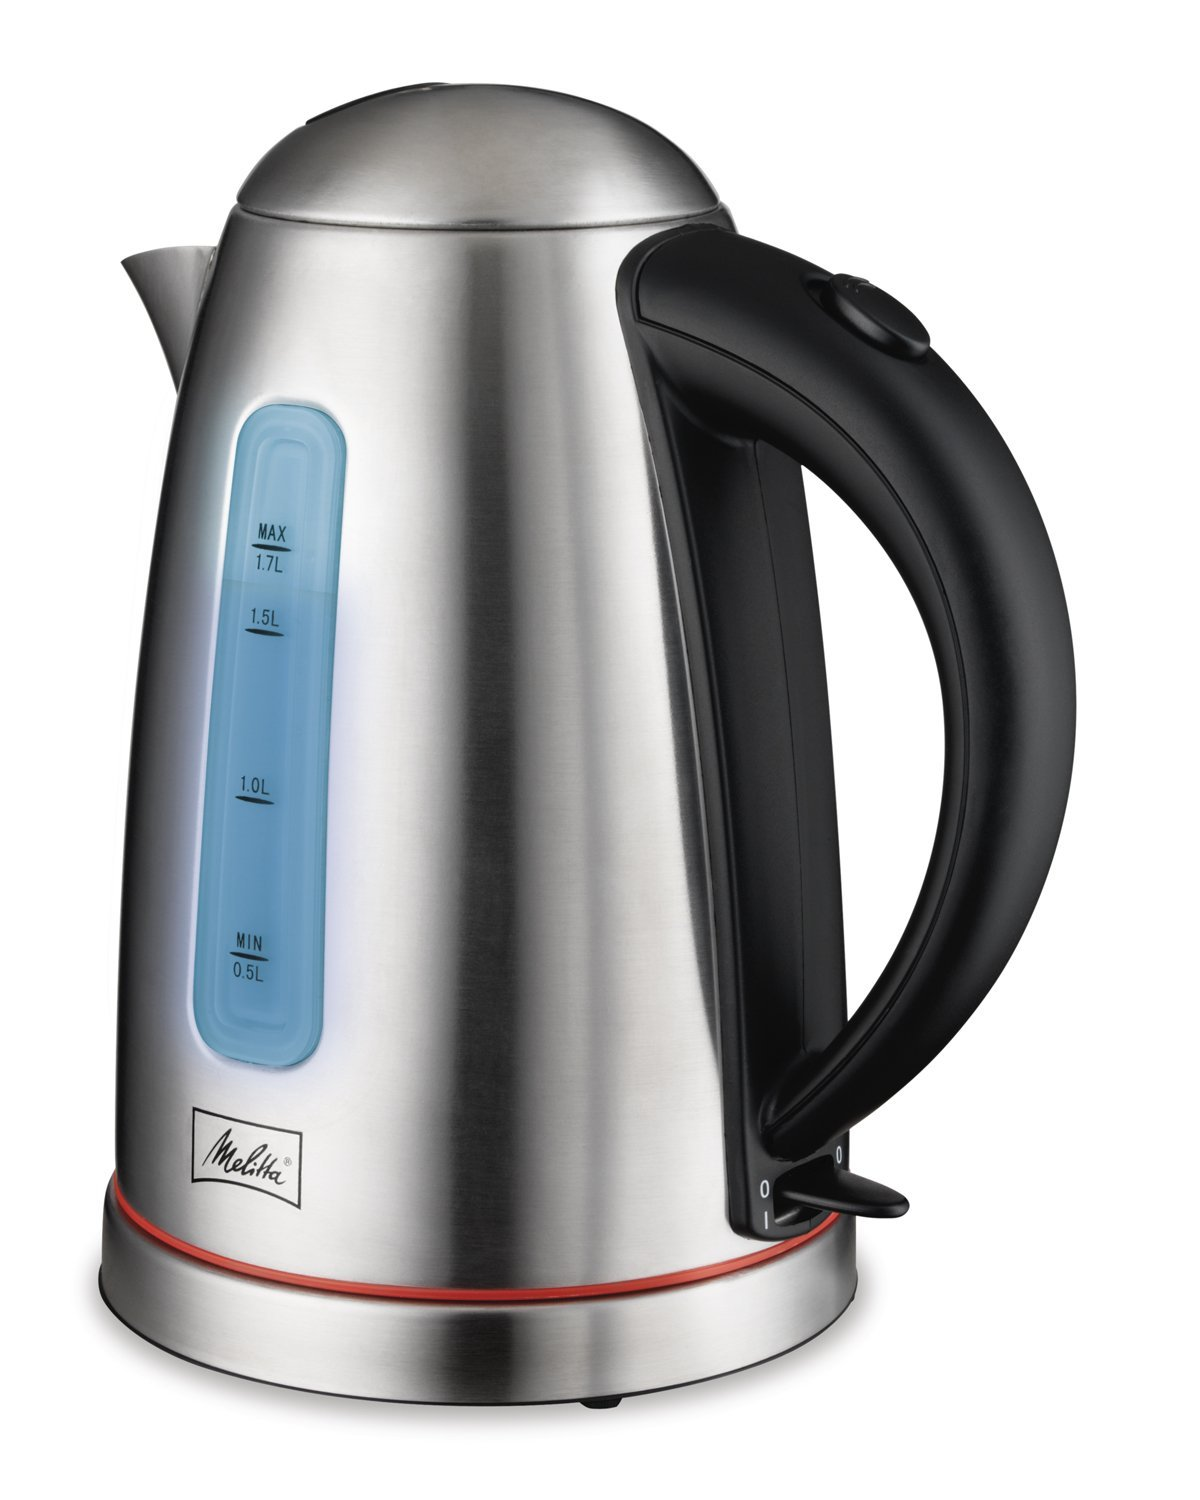 Melitta 40994 1.7-Liter Kettle Review